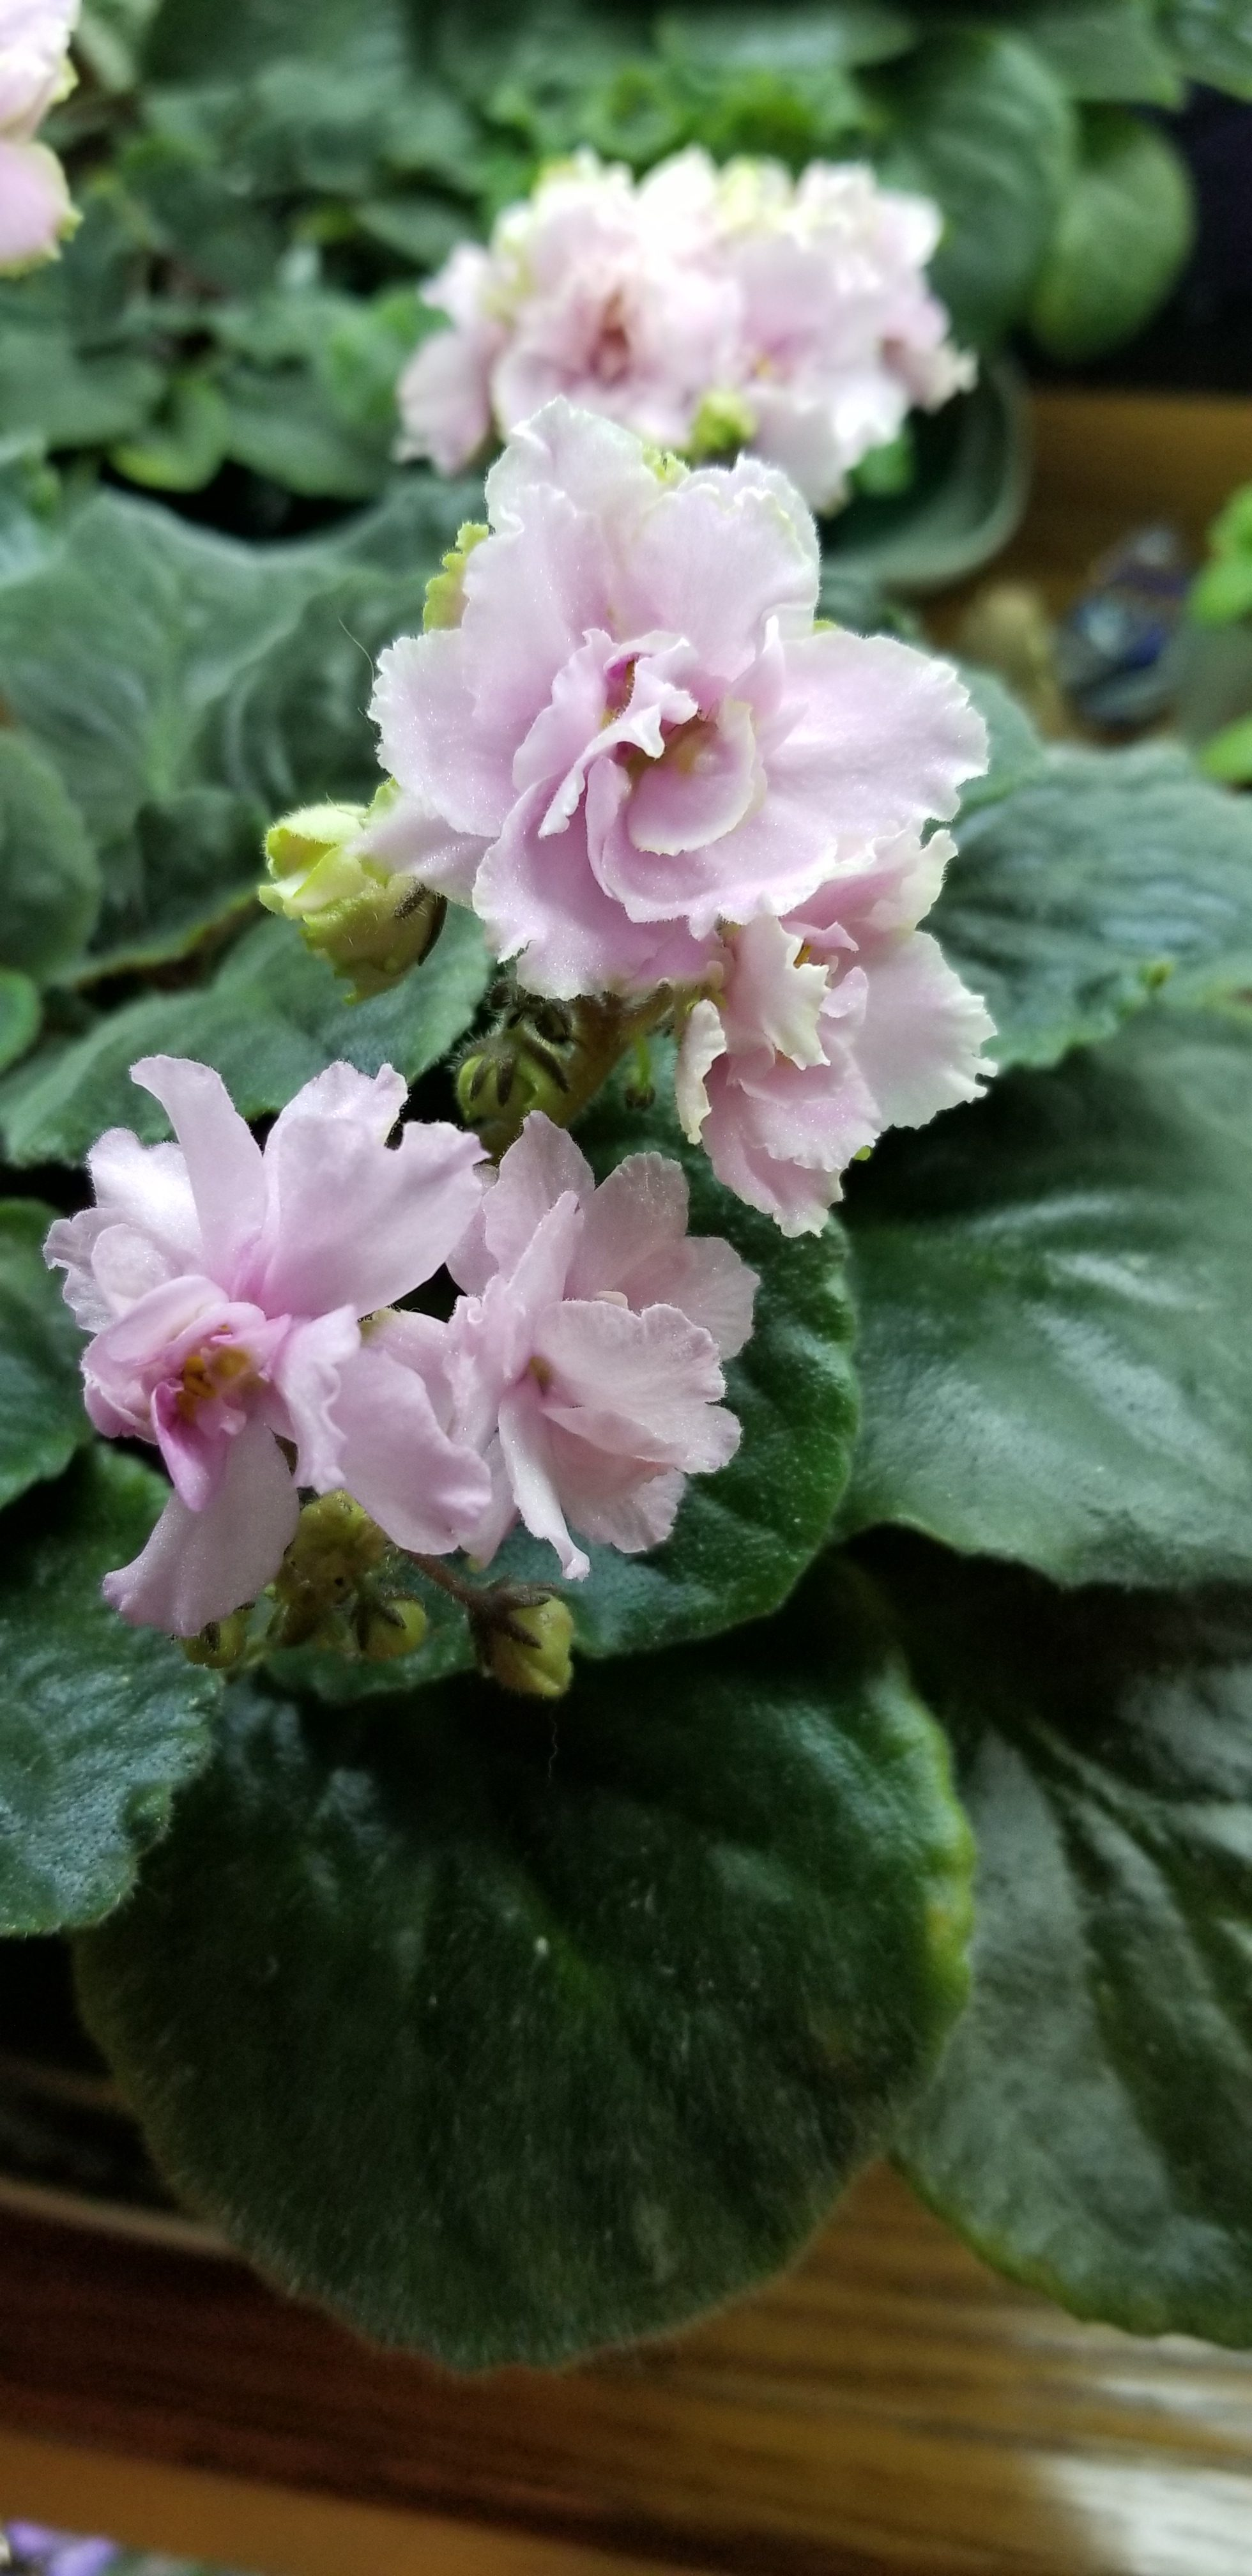 """Pink with white to green edges, 1.75"""" blooms on tall stems in clusters                                                                                                                                                                                                                                         Size/growth habit:  Standard size, Flat foliage lightly quilted"""